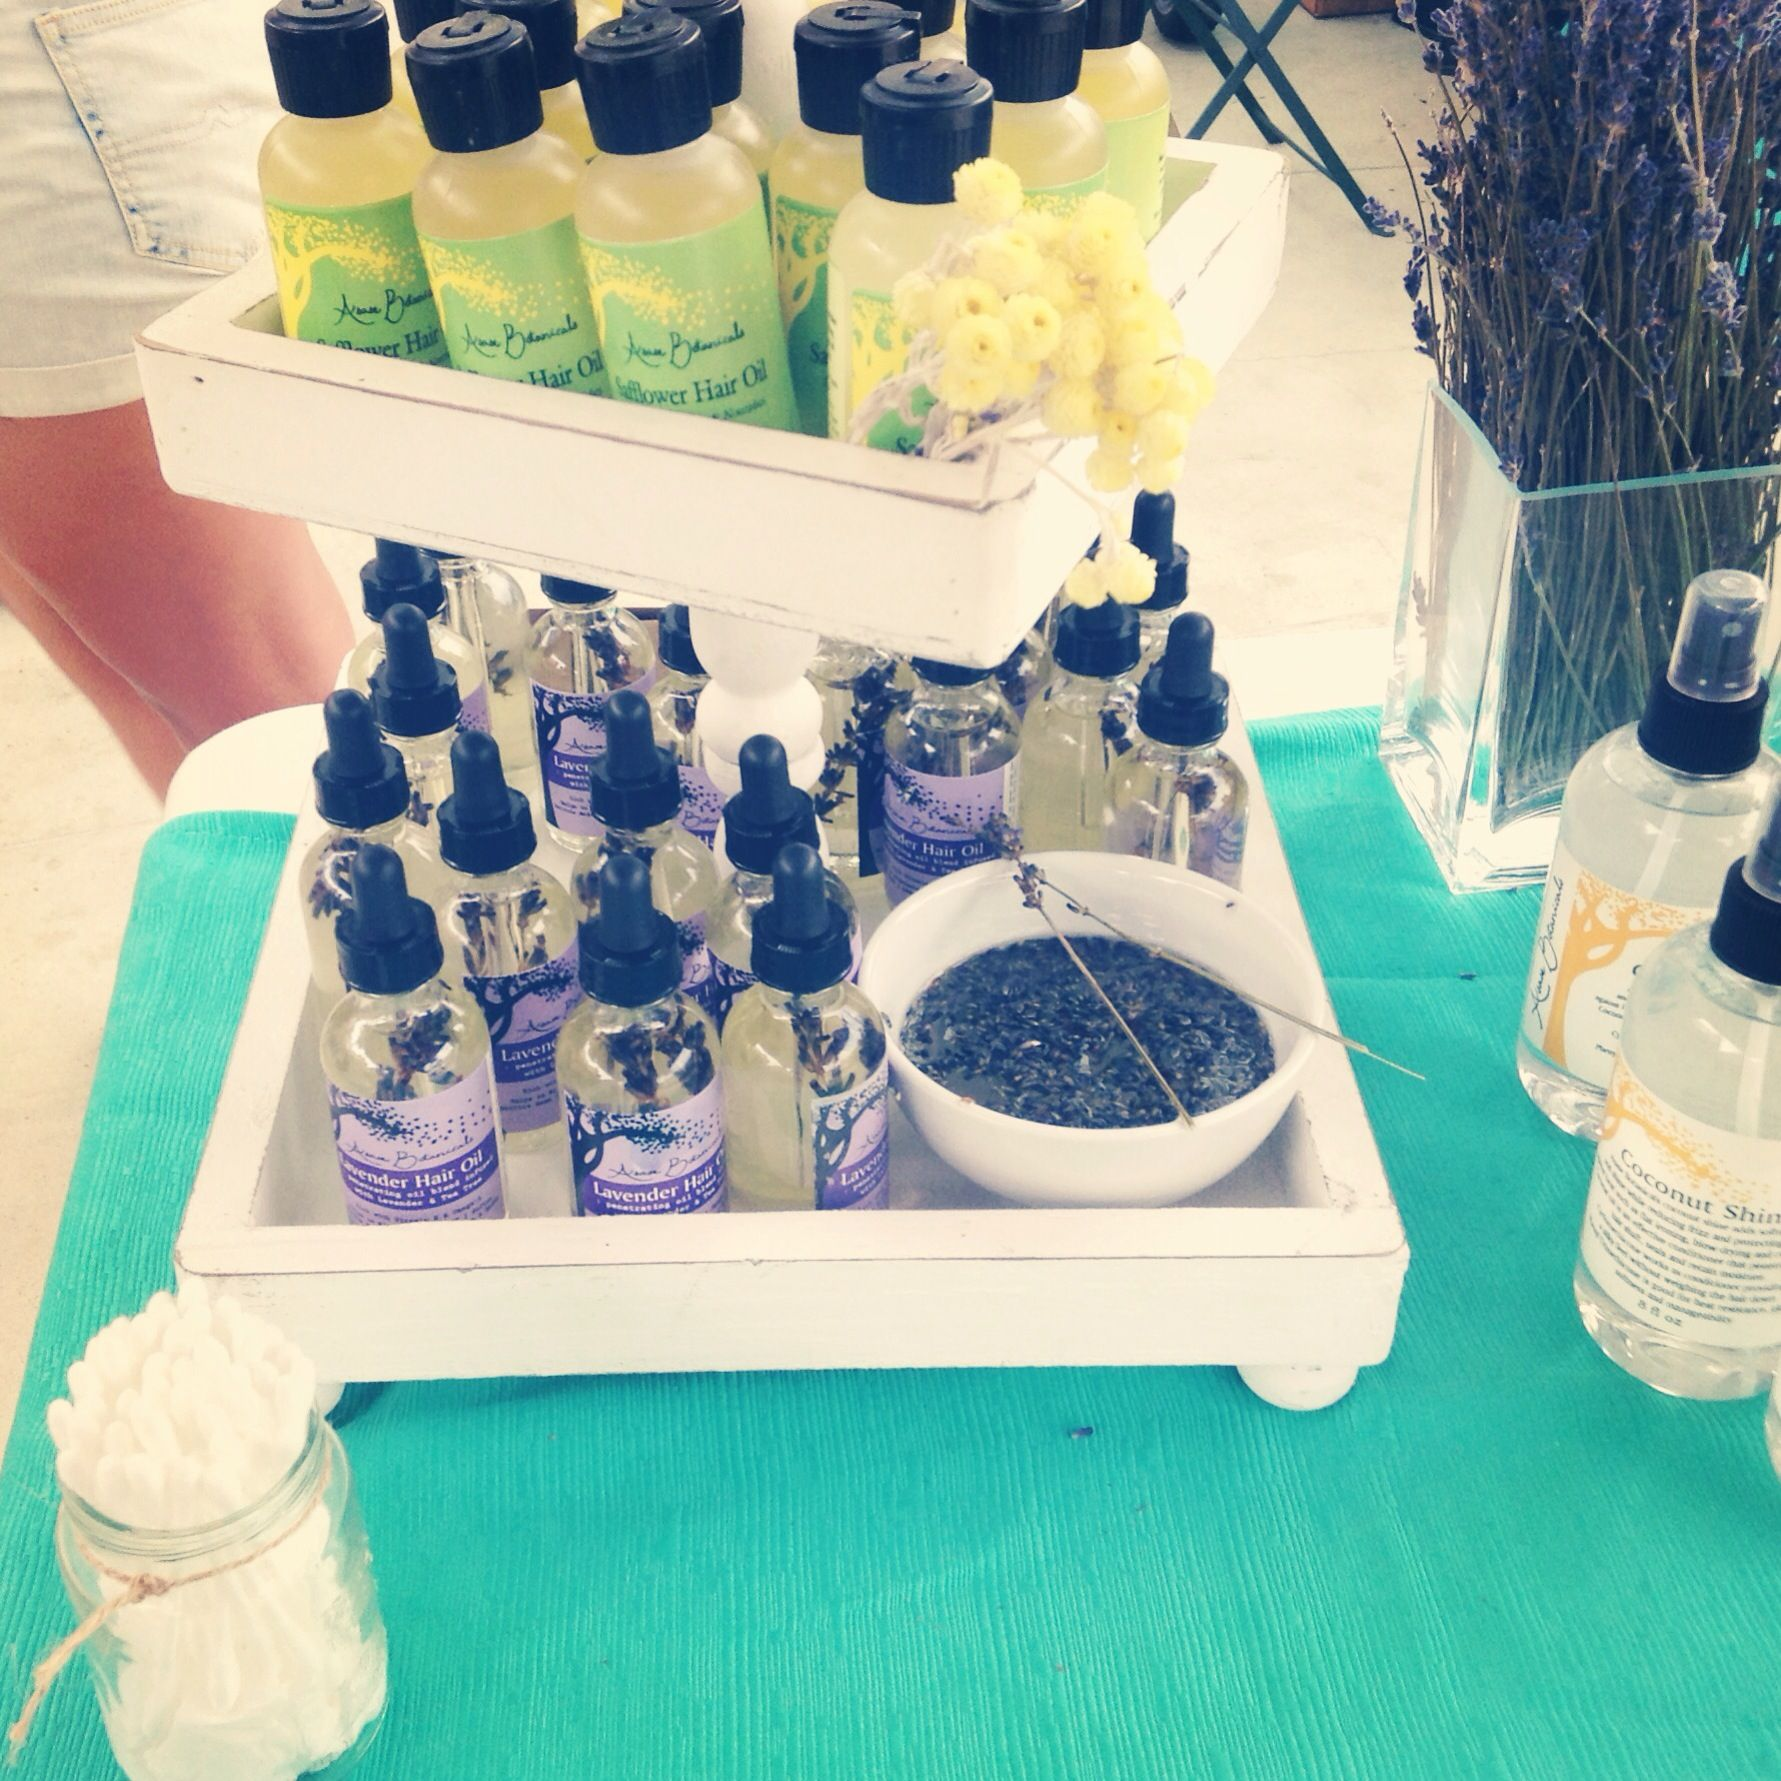 Our new lavender oil